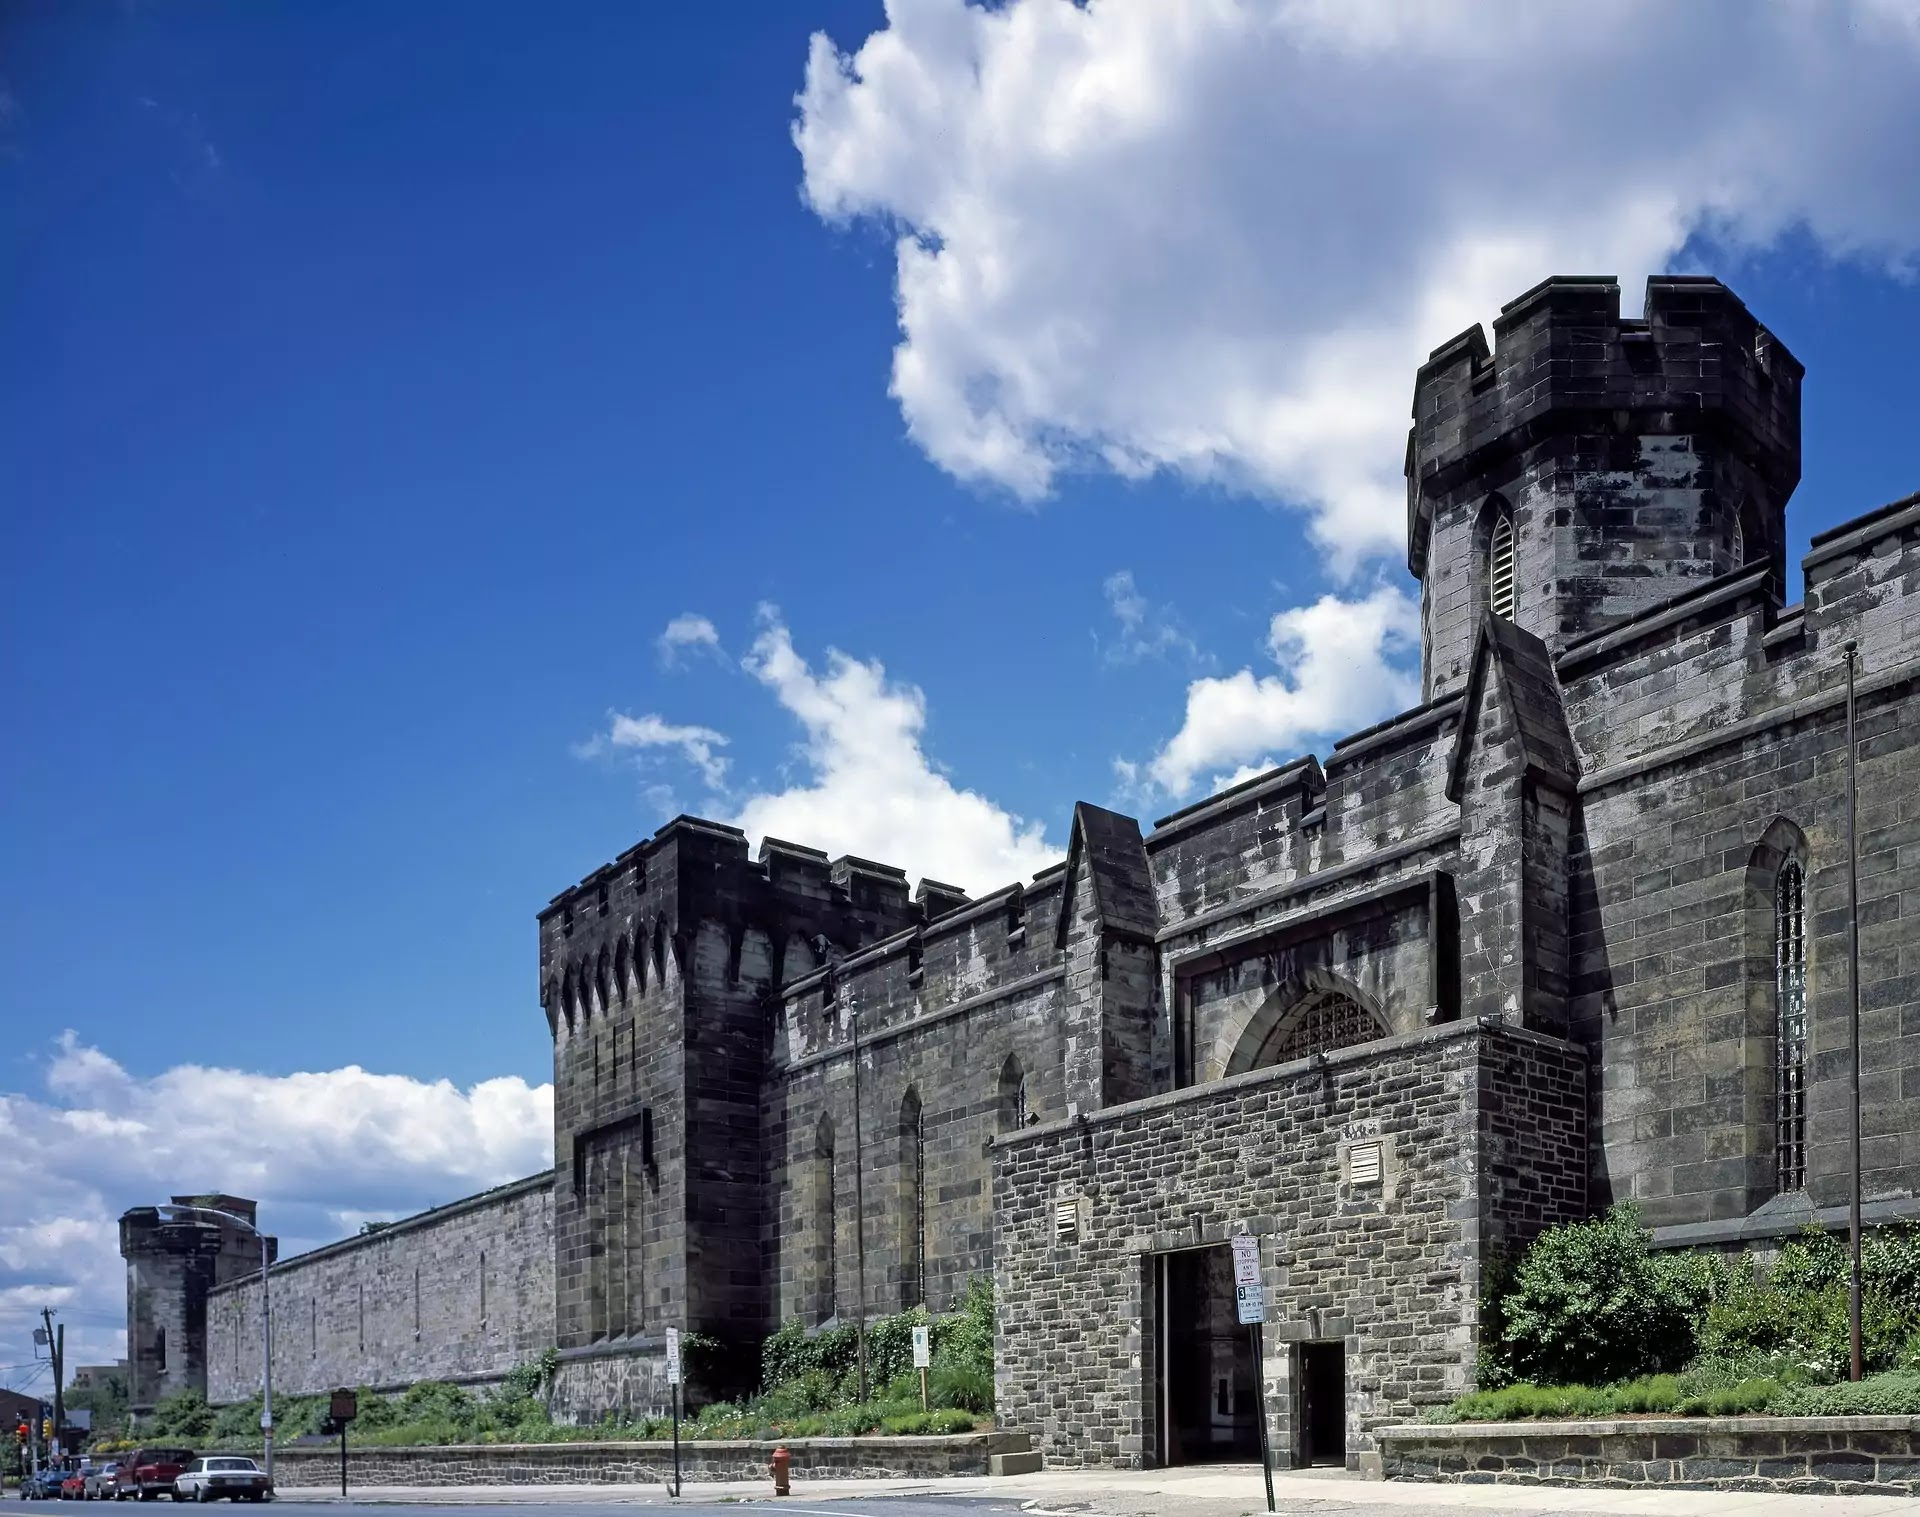 Haunted Eastern state penitentiary, US